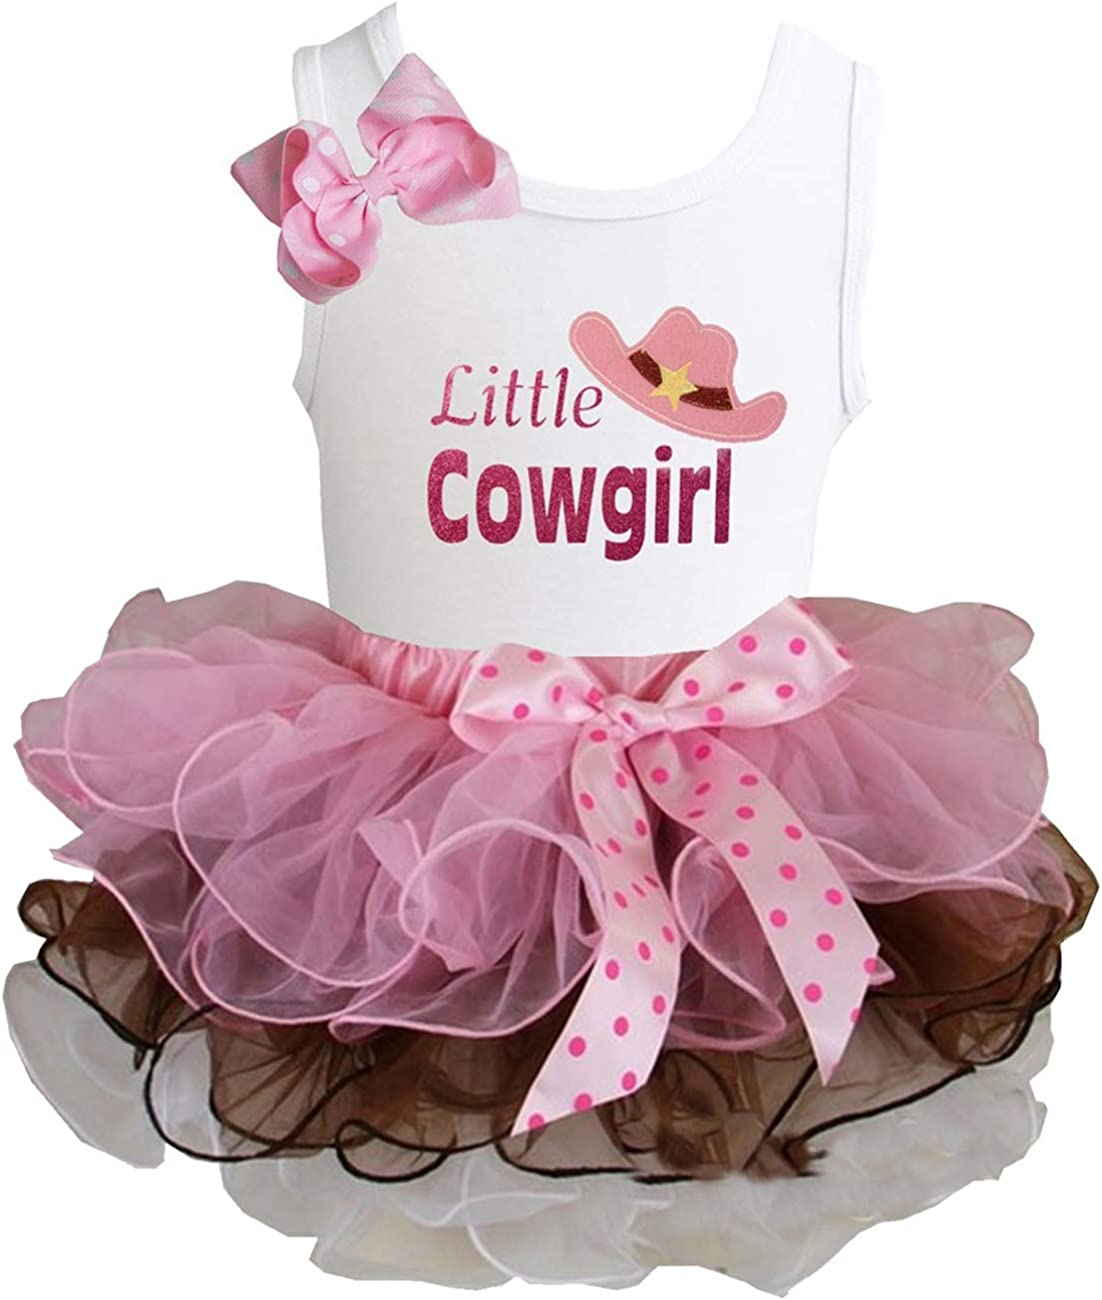 Kirei Sui Brown Light Pink Tutu /& Little Cowgirl White Tank Top